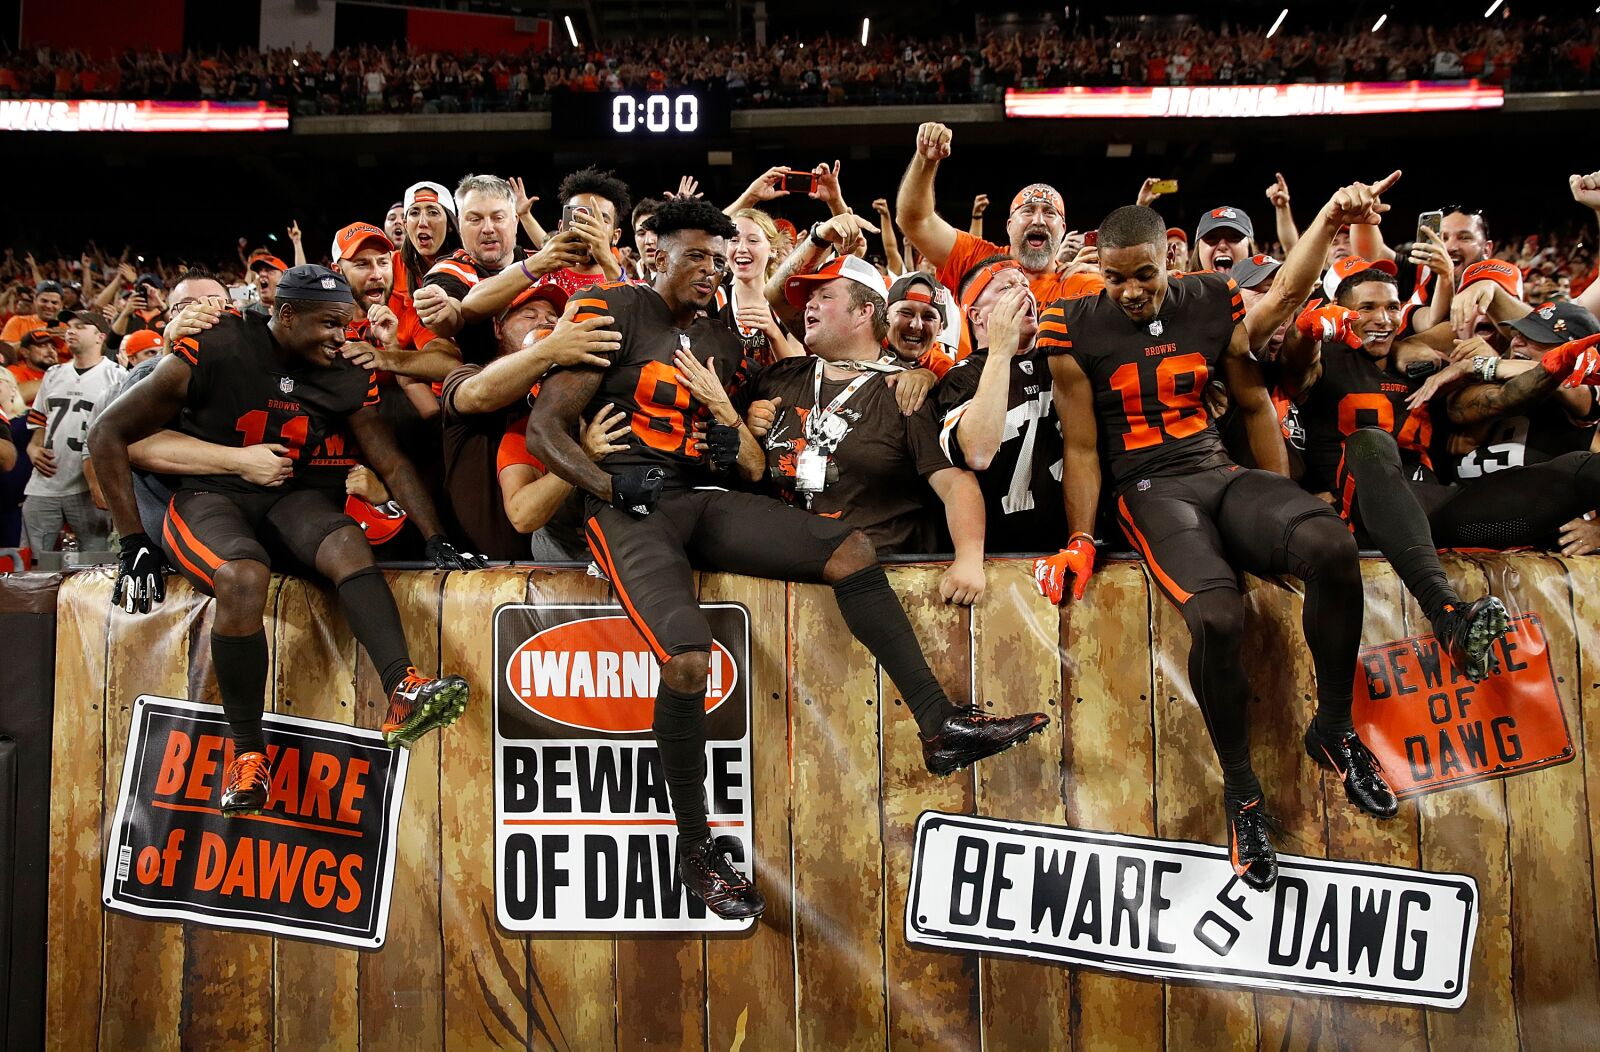 Daily Dawg Tags: Cleveland Browns still favorites to win AFC North